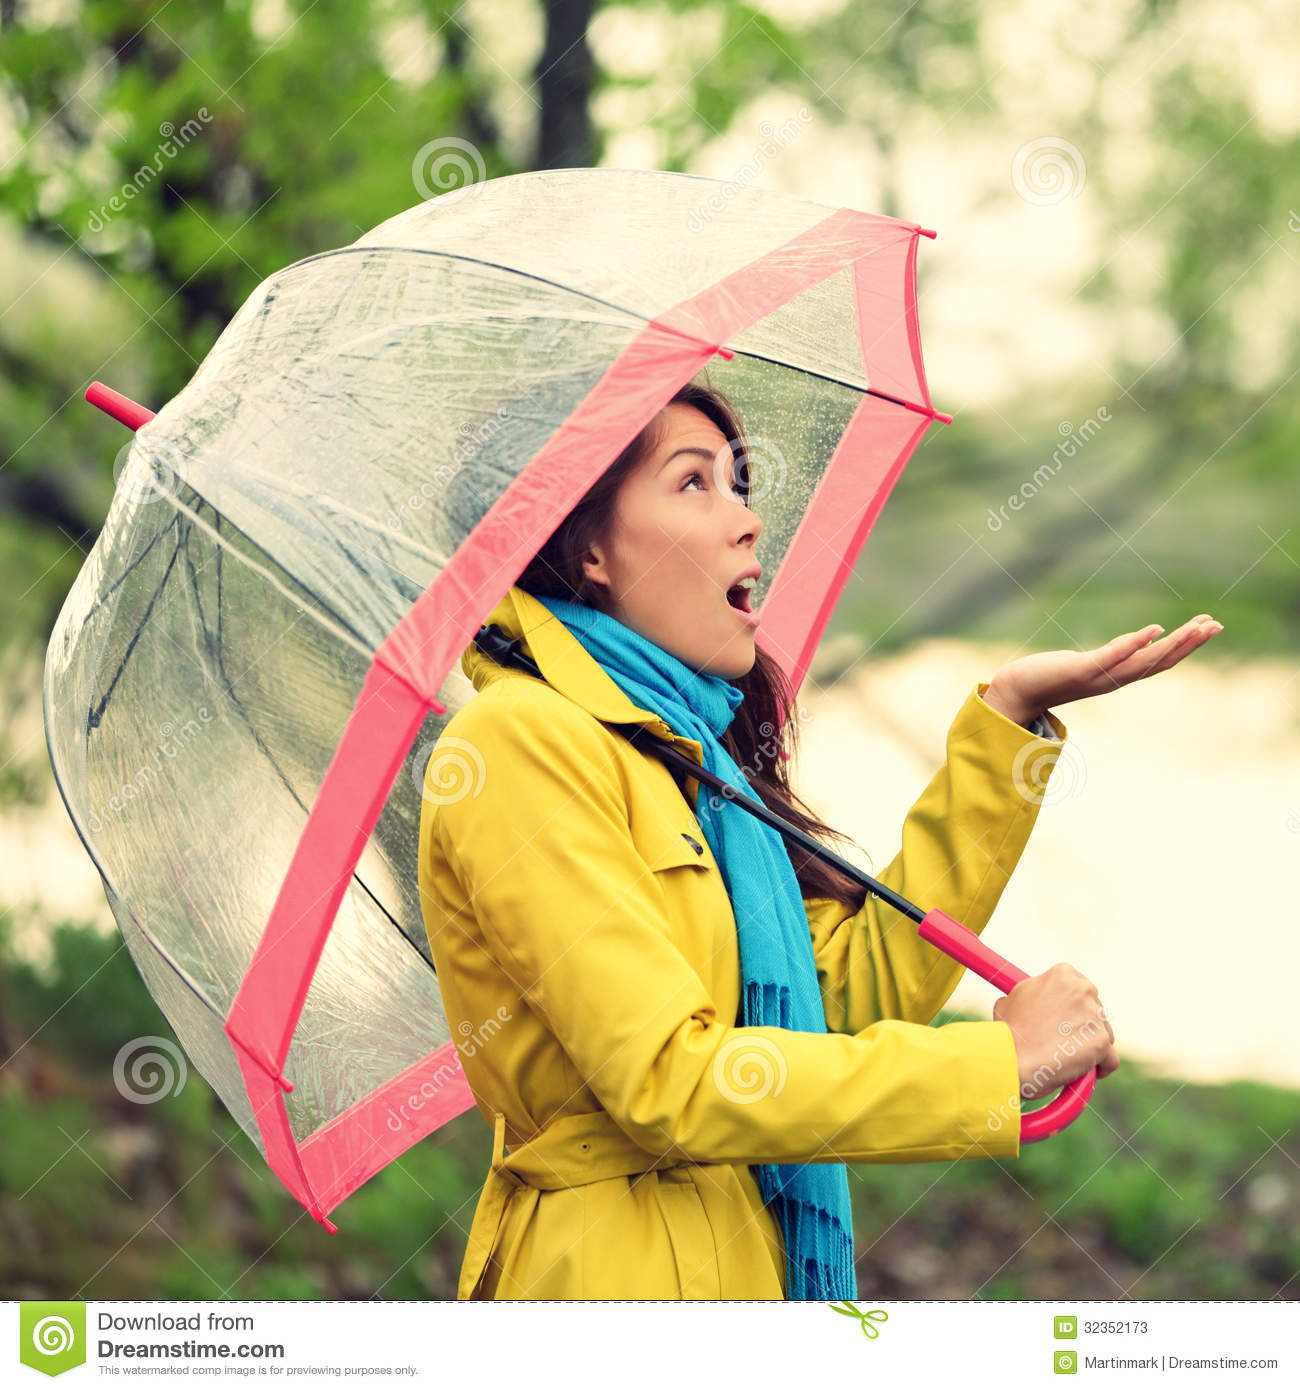 Umbrella Woman In Autumn Excited Under Rain Stock Image ...